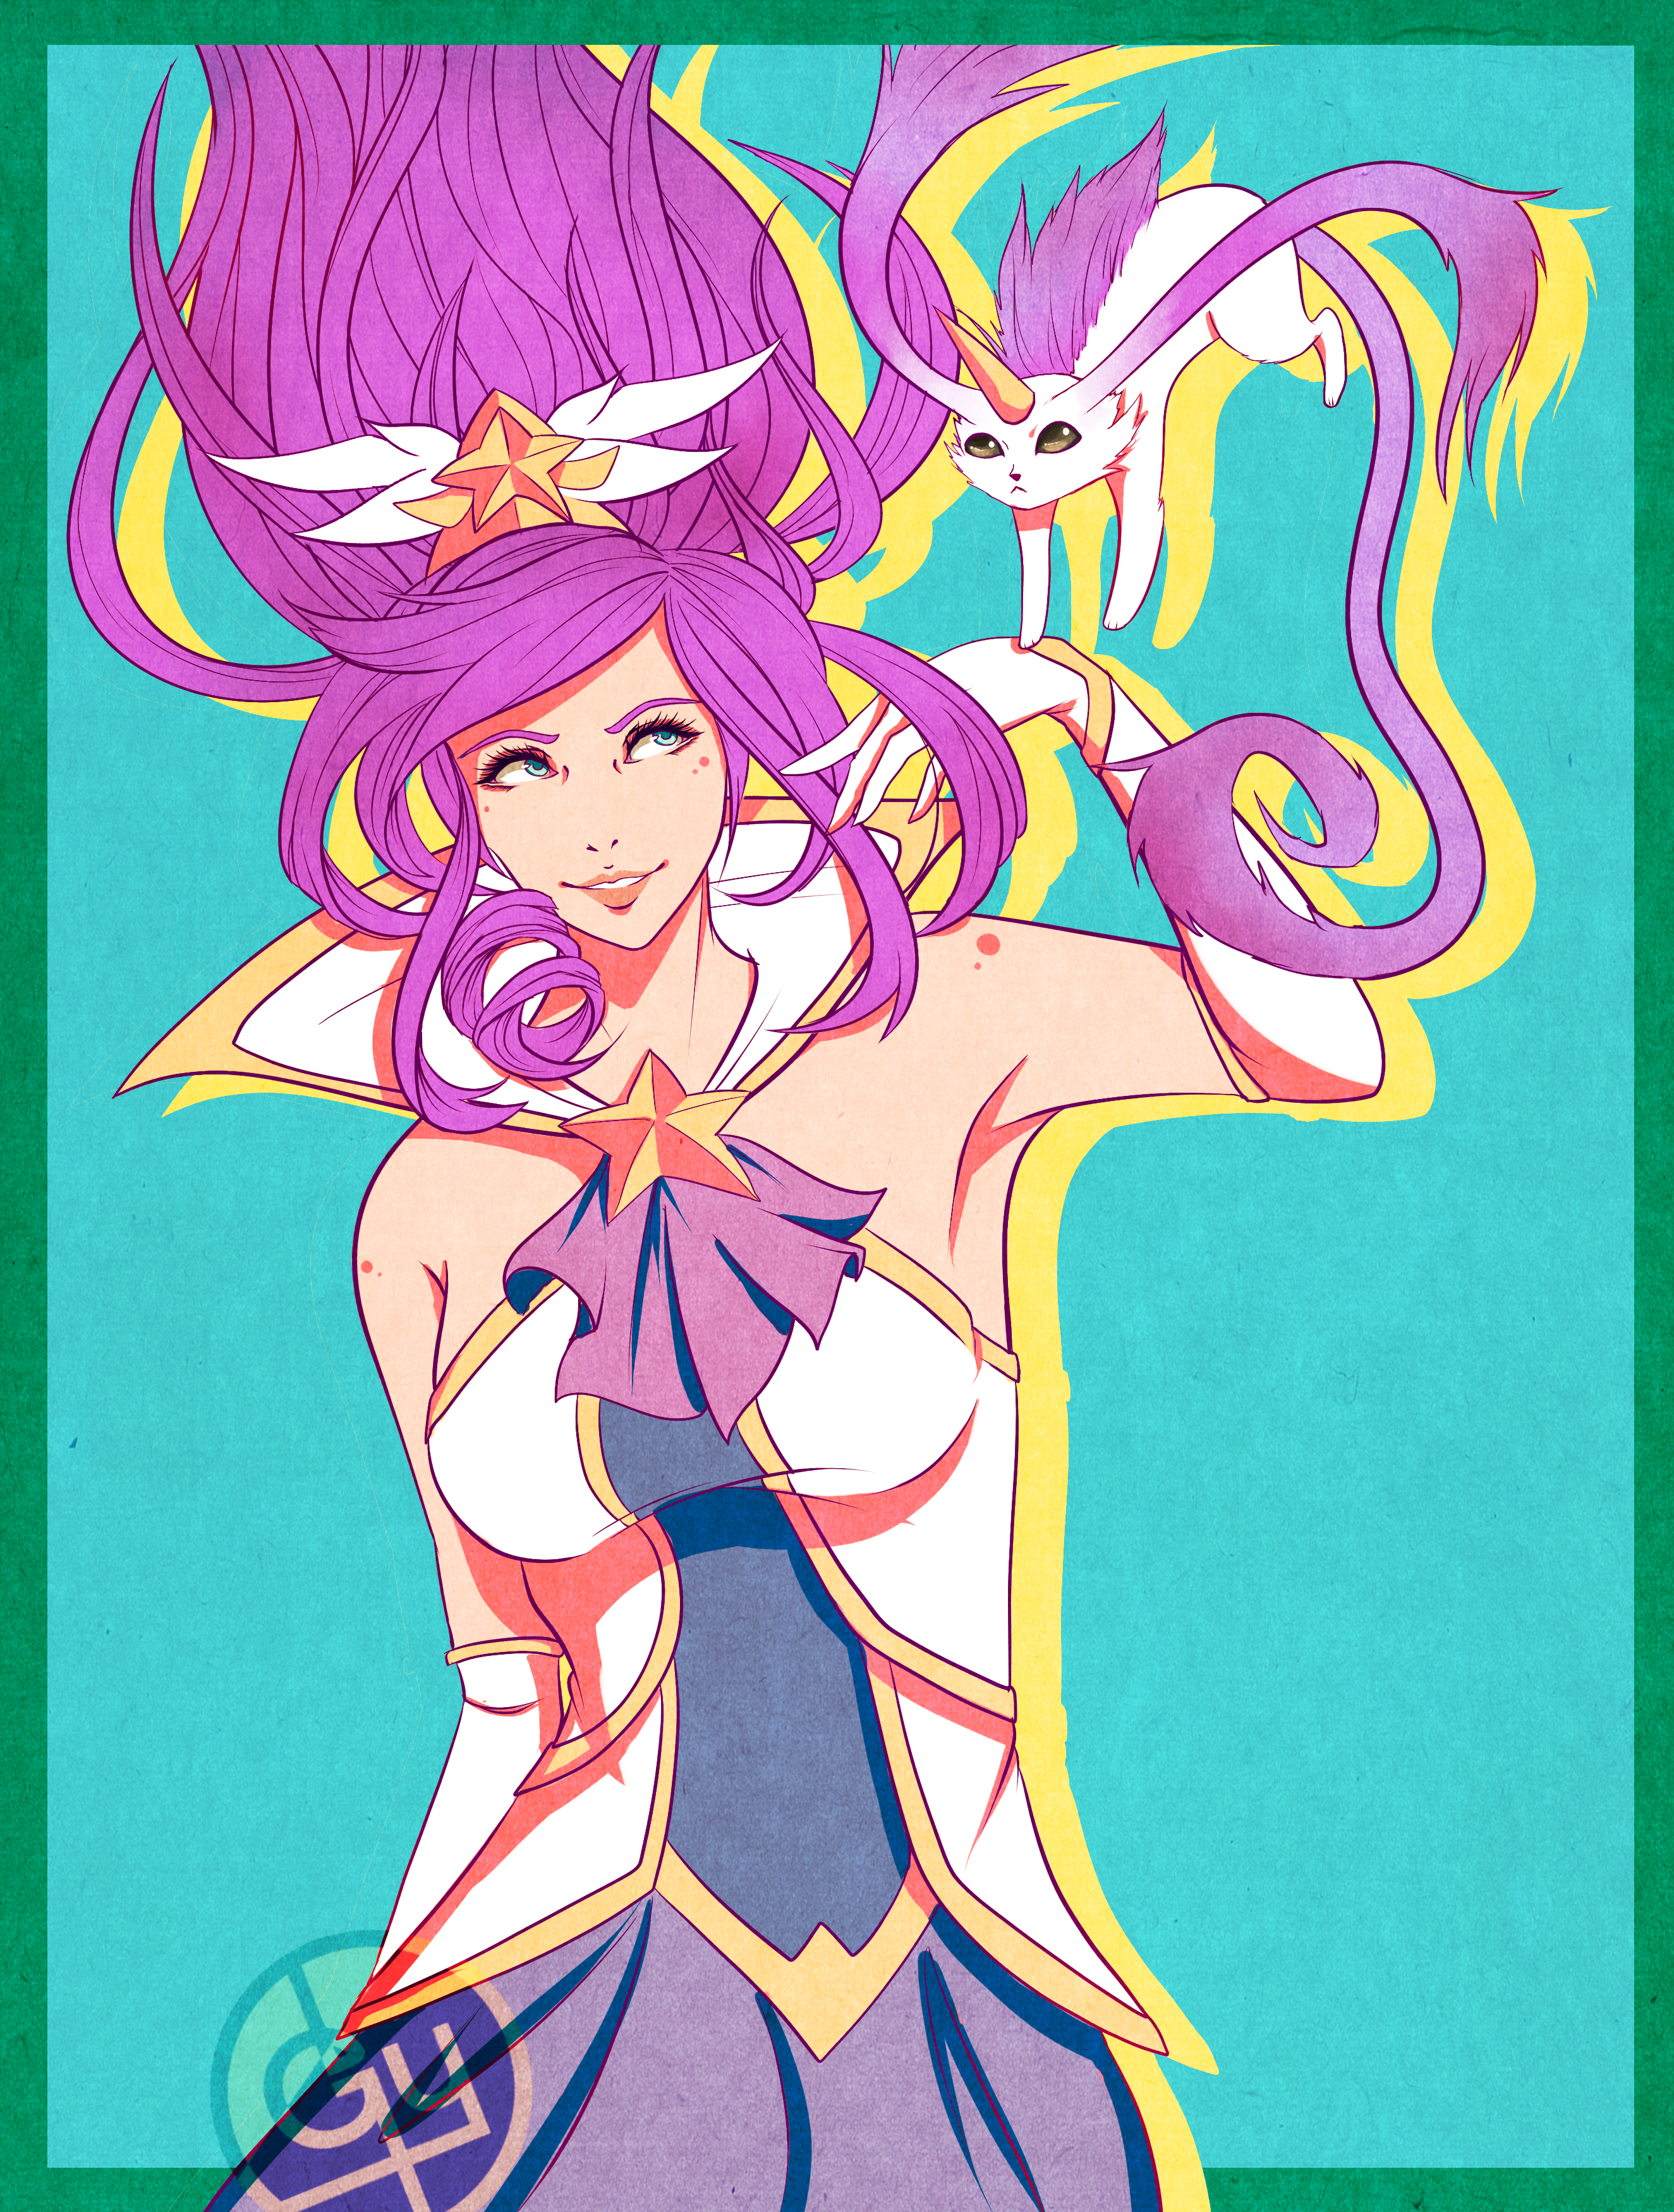 Star Guardian Janna by AlmaGKrueger on DeviantArt